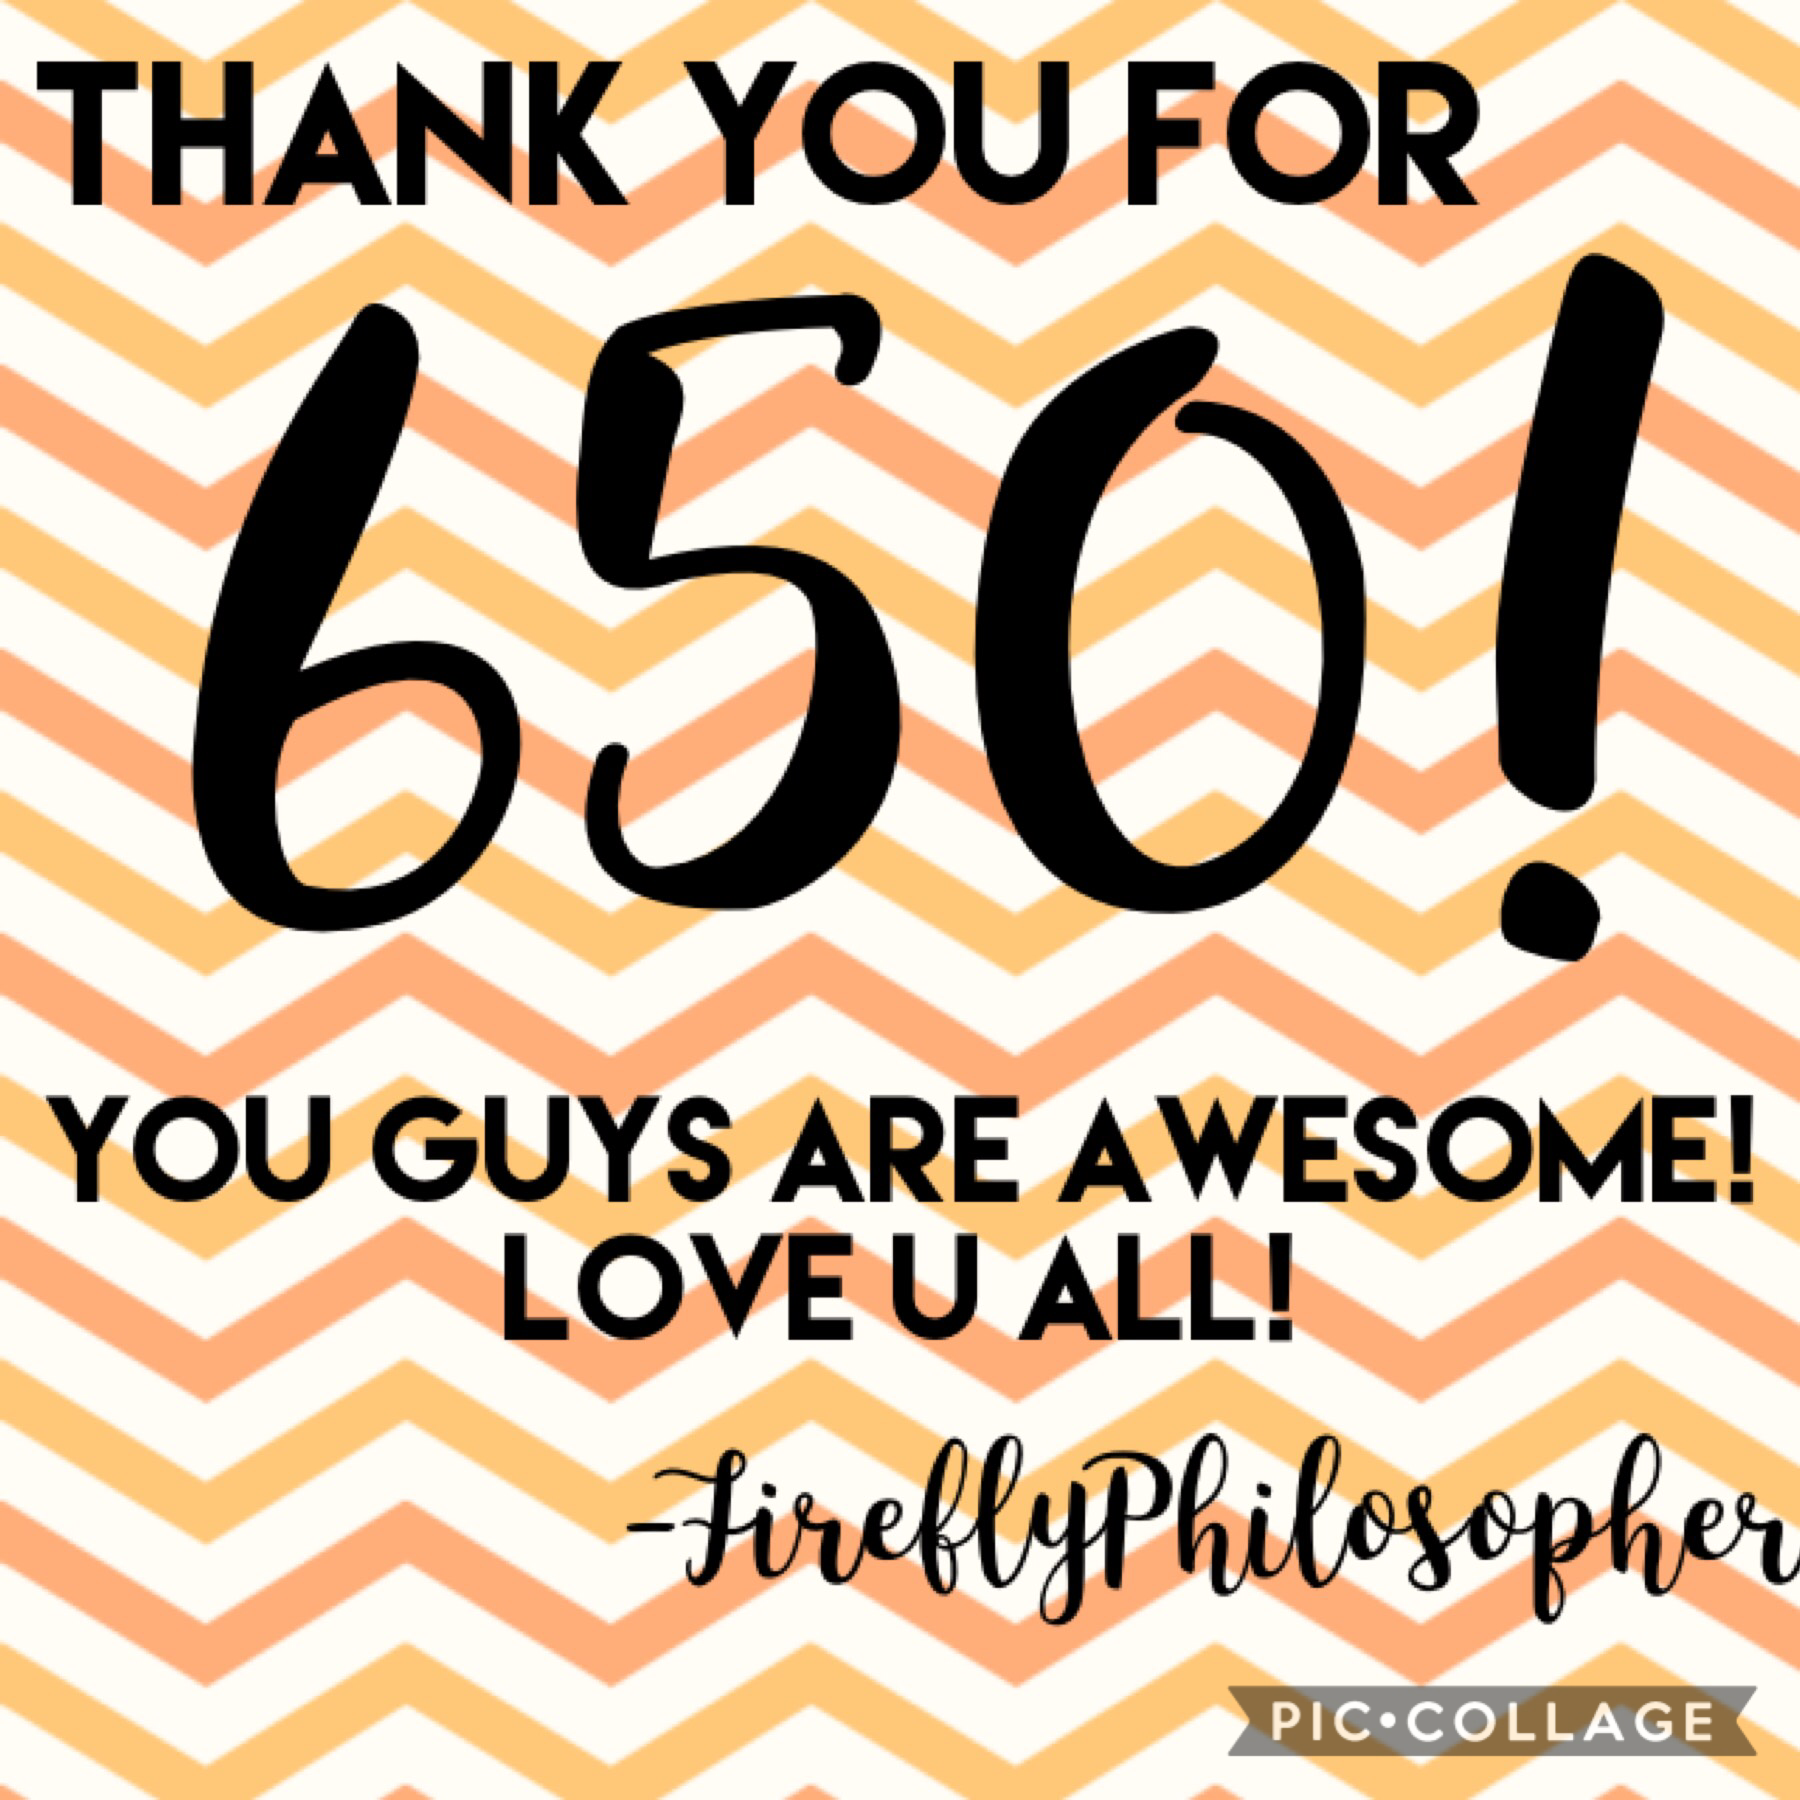 Thanks so much! You all are amazing.